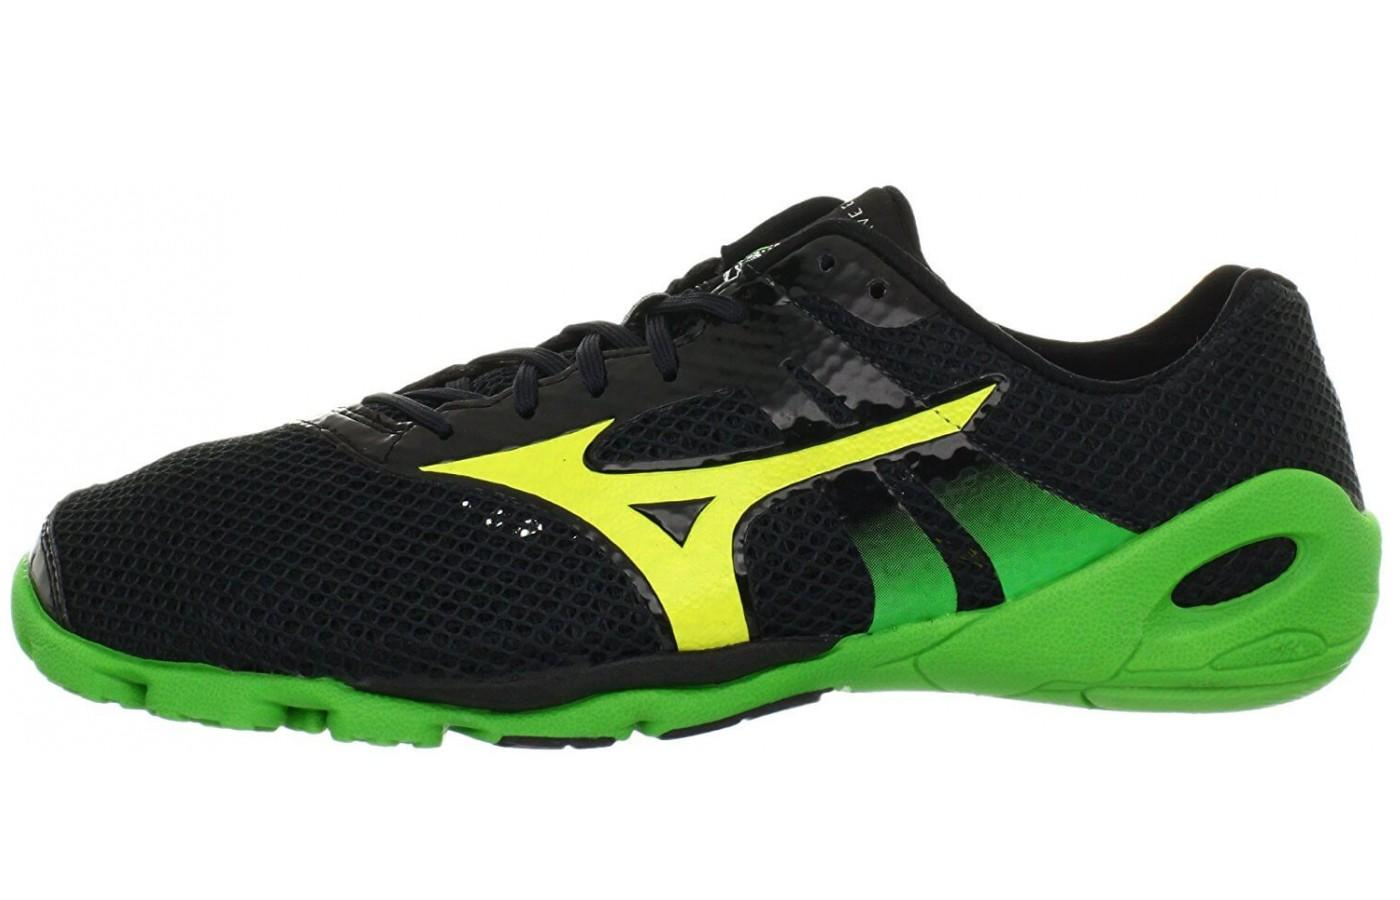 The color stylings on the Mizuno Wave Evo Levitas are striking